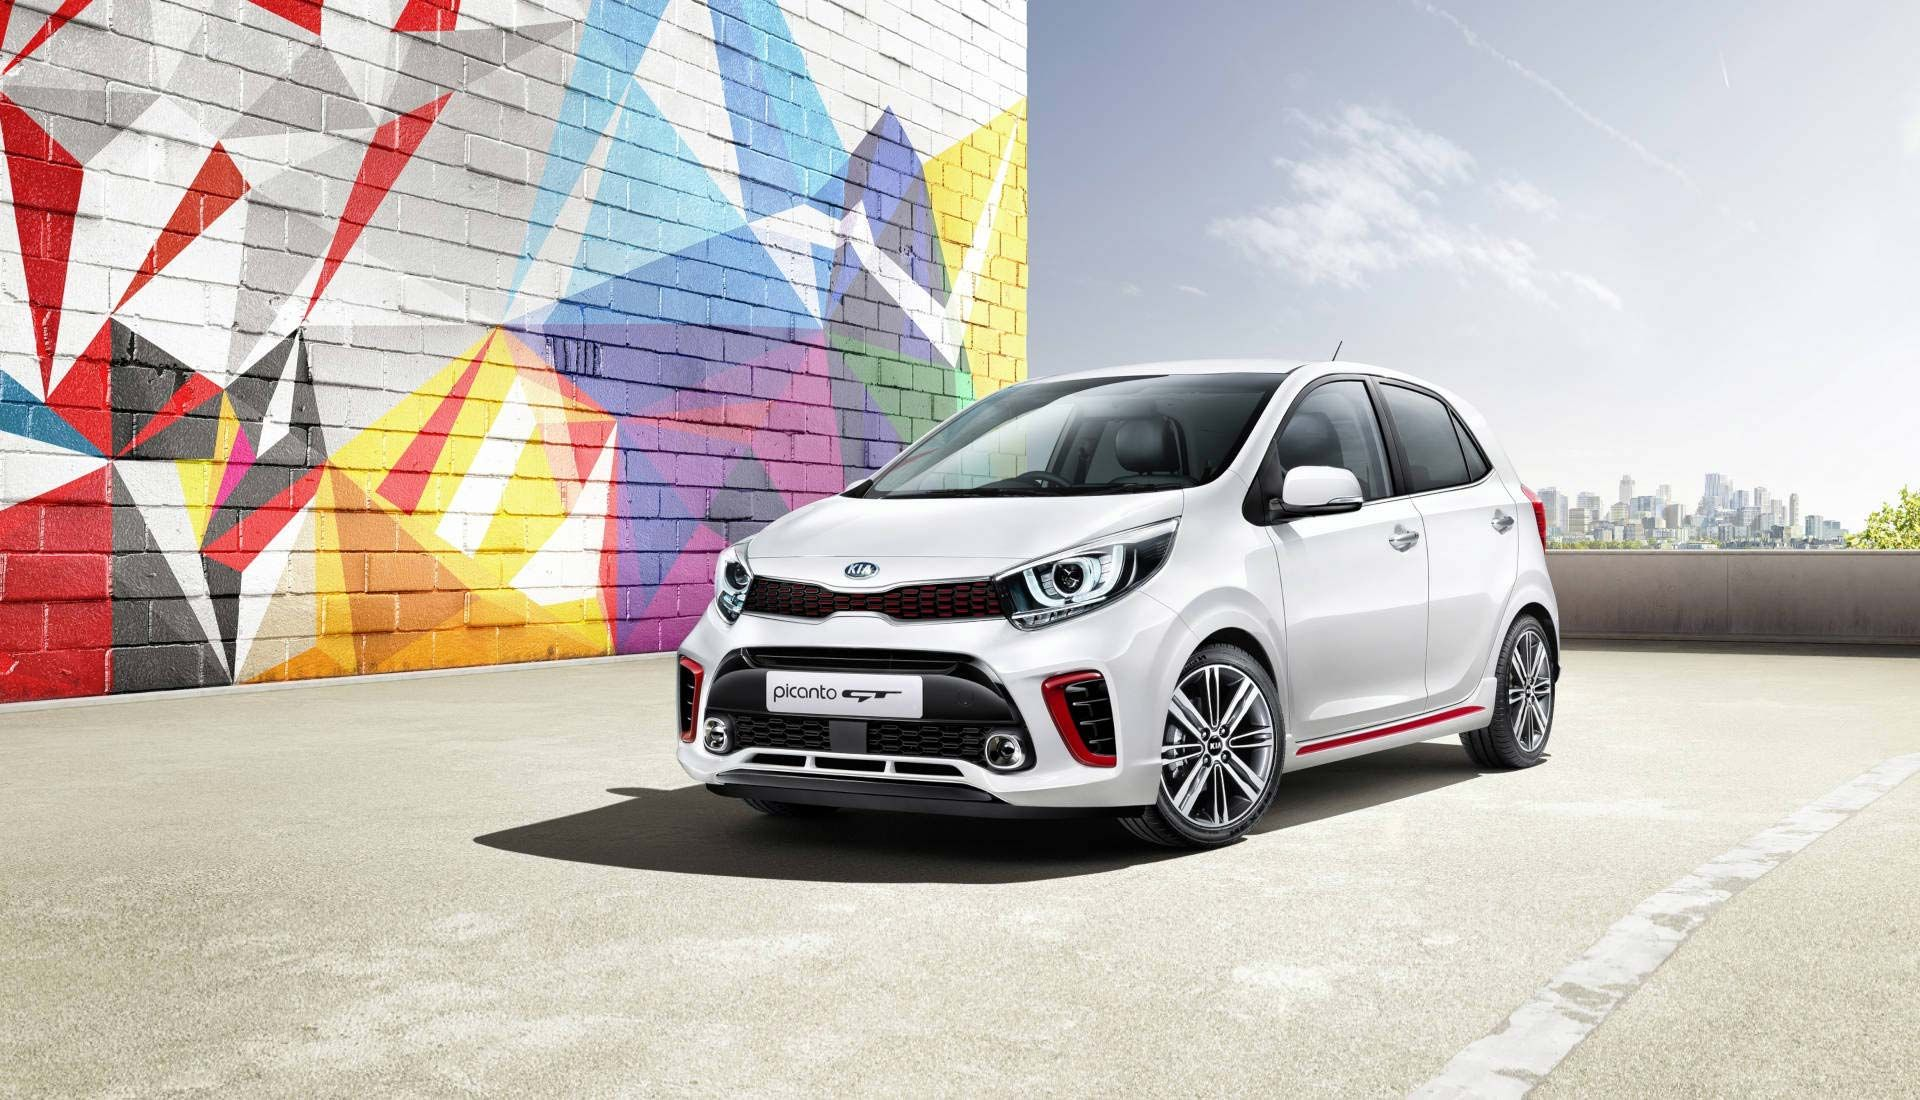 Picanto - Small City Car - Southland Kia